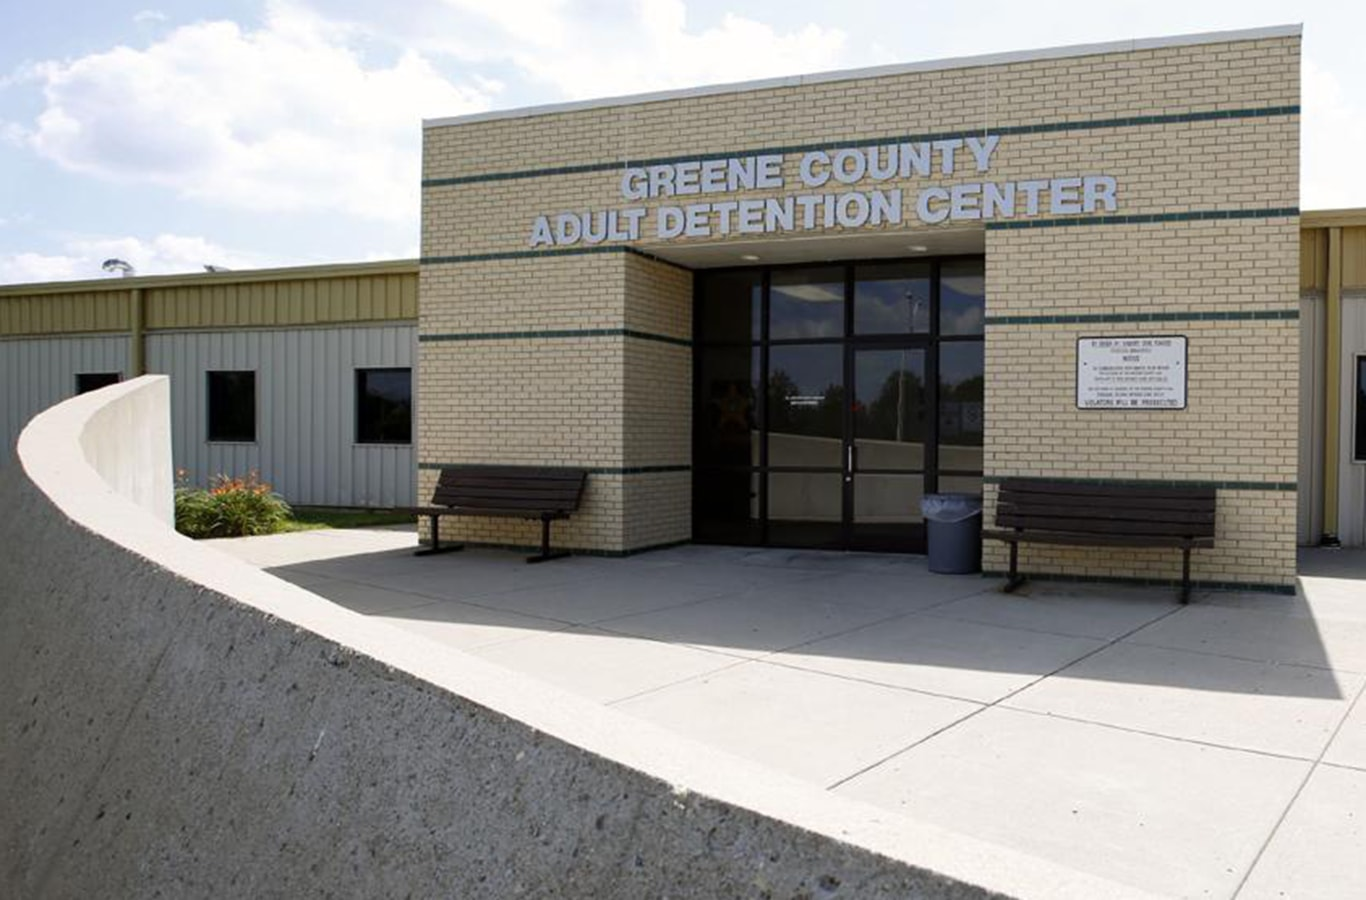 Signature Concrete | Green County Adult Detention Center